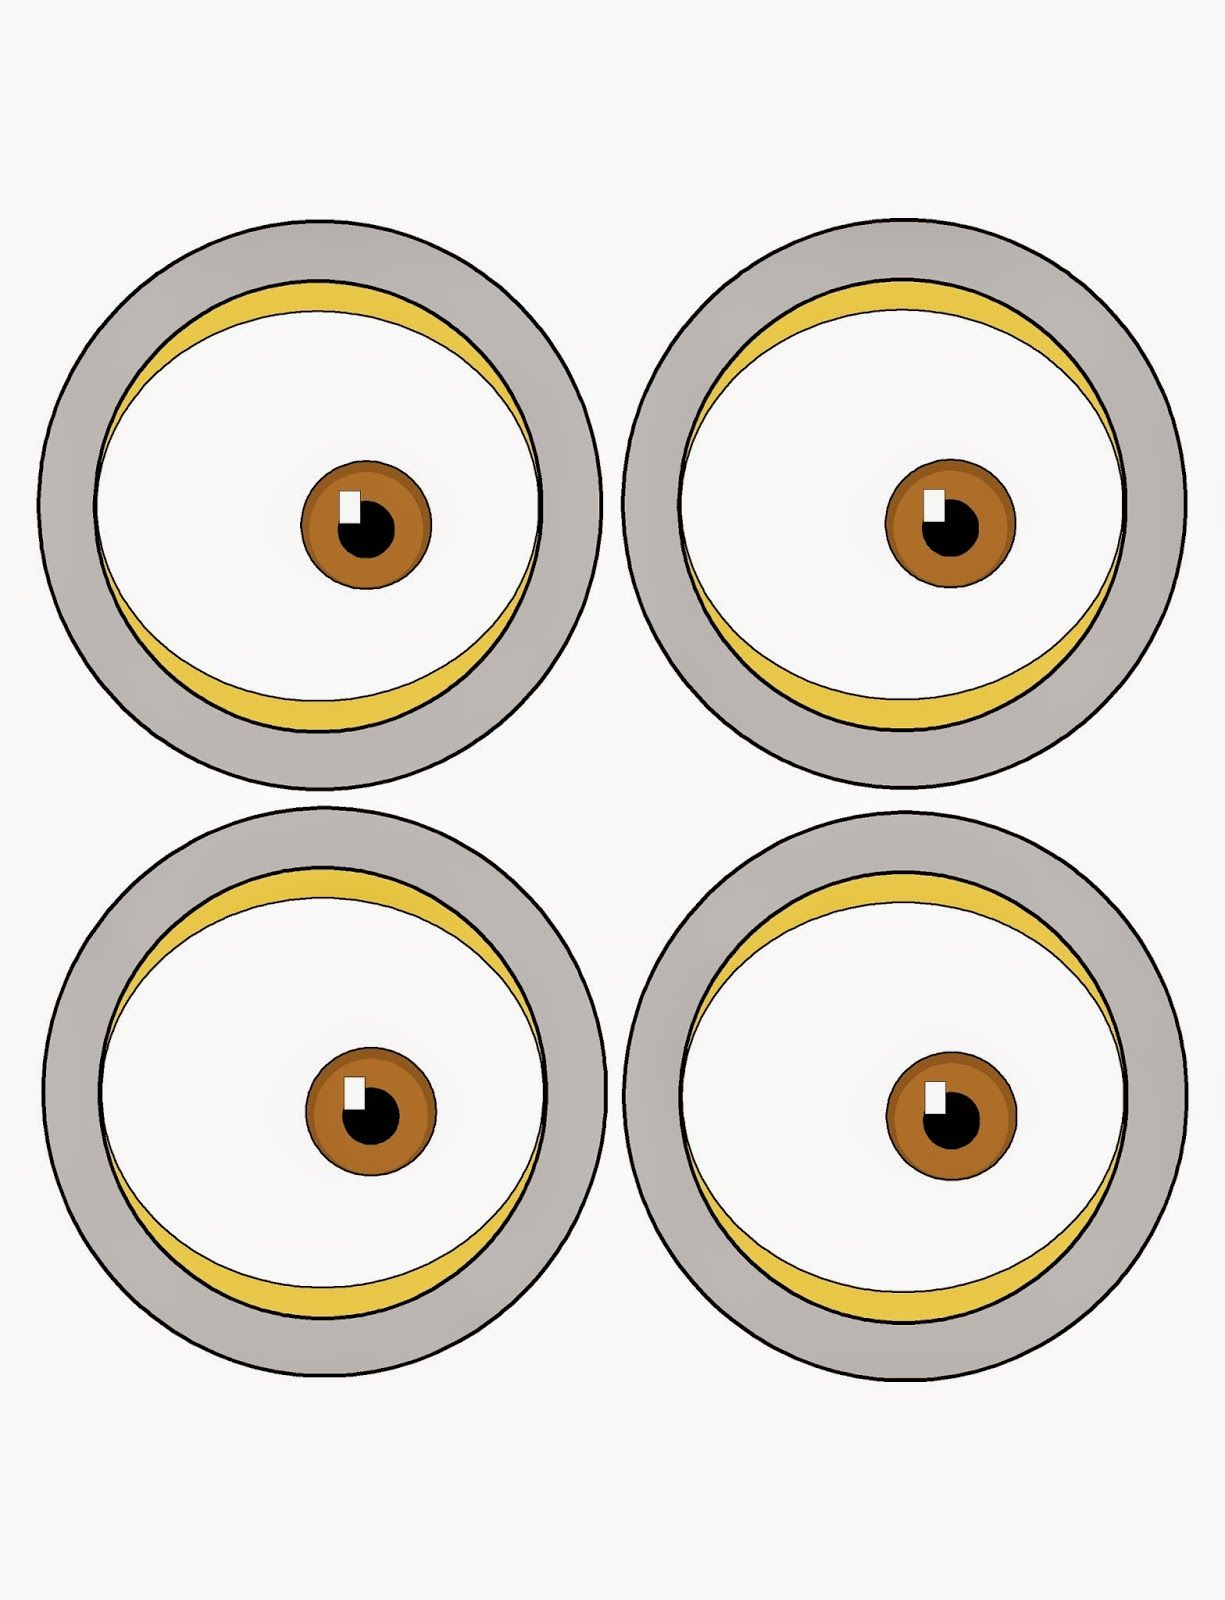 This is an image of Candid Minions Printable Eyes